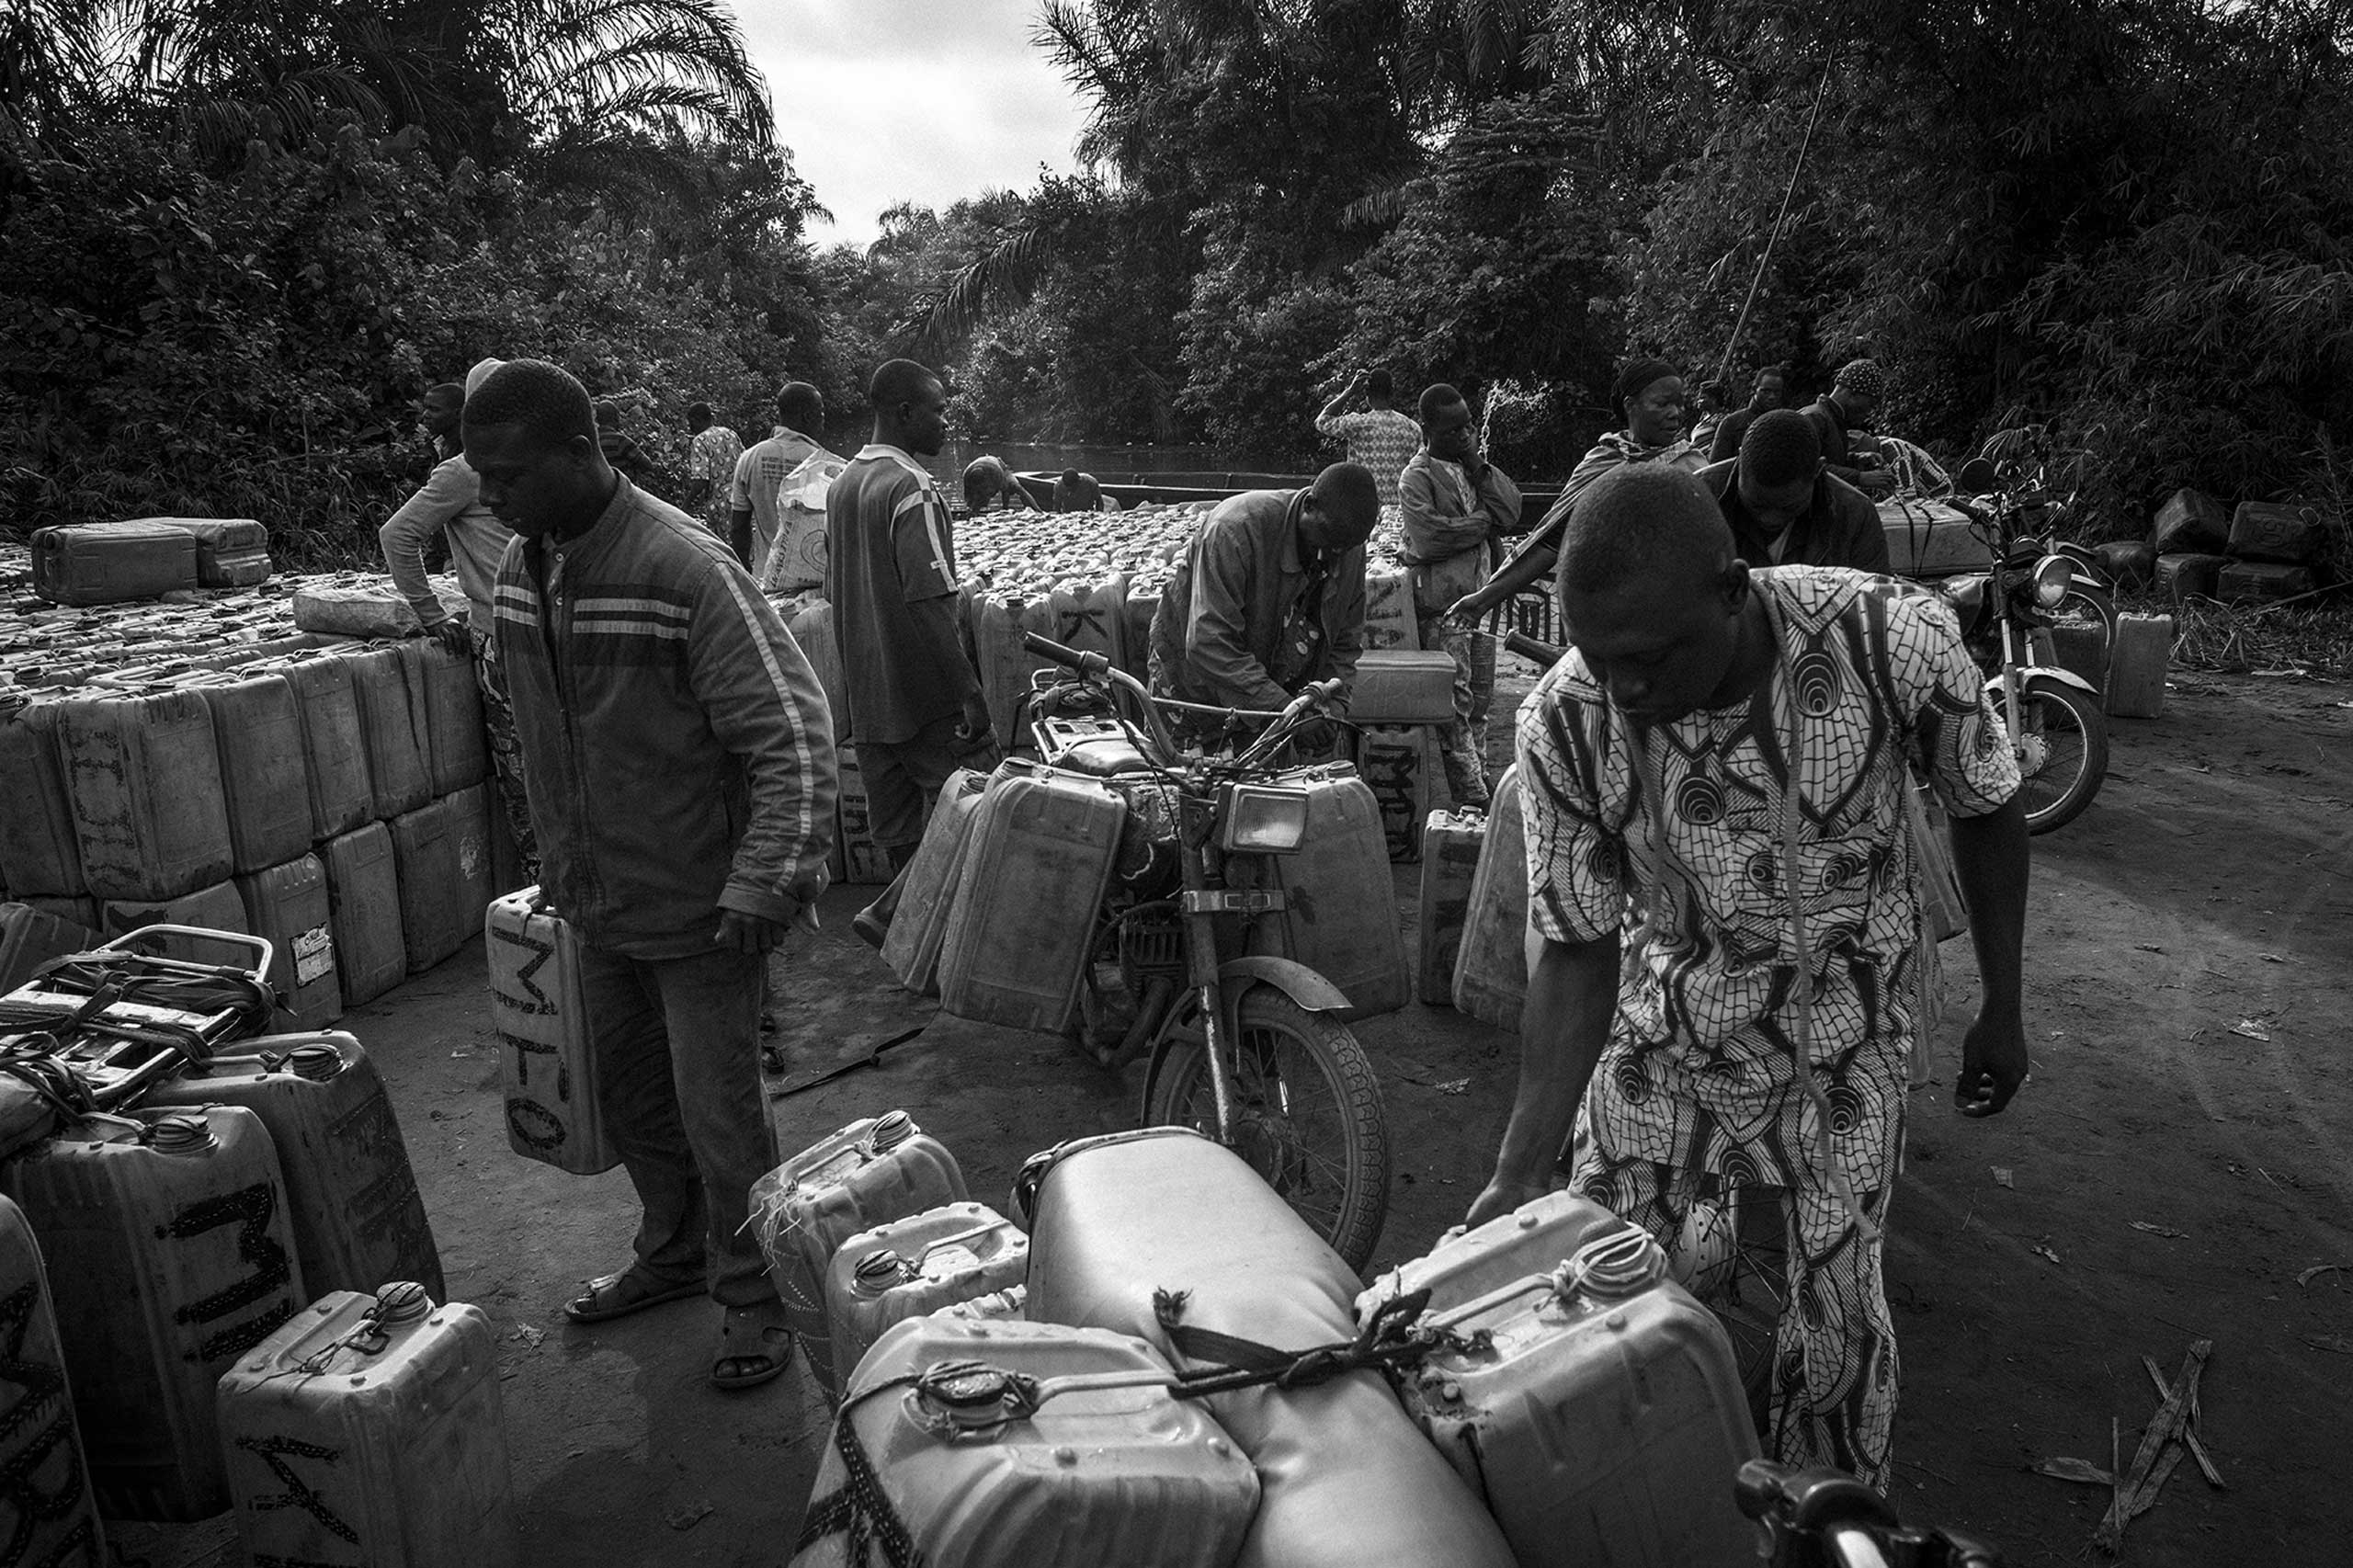 When the goods arrive on Beninese soil, hundreds of drivers wait on the seashore with their motorbikes marked with the initials of their leaders. The first task of the motorcyclists is to identify the drums to load them up on their motorbikes.